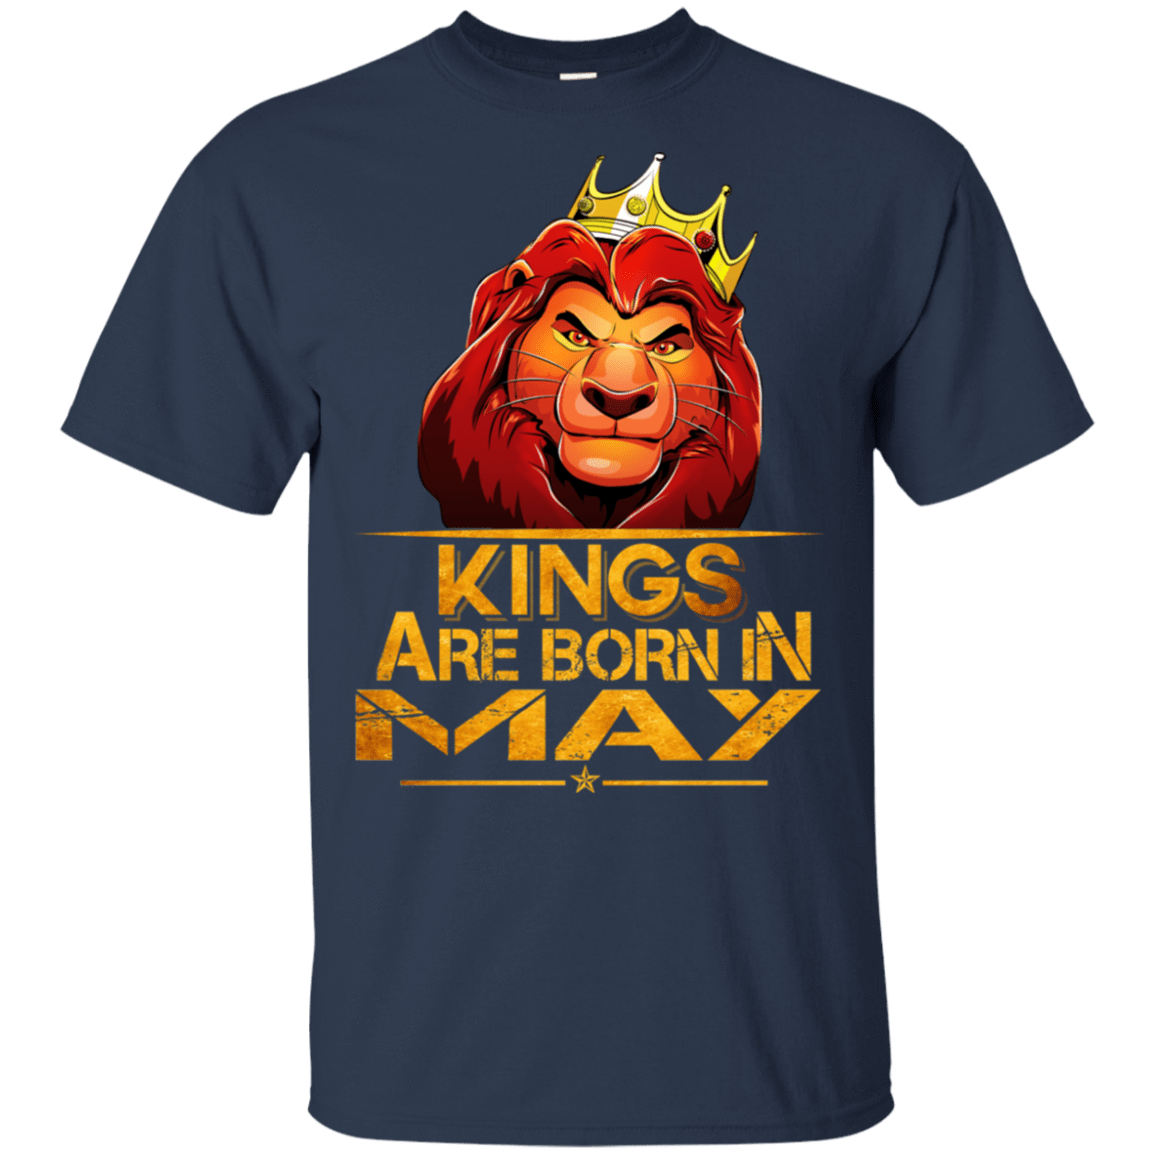 Lion Kings Are Born In May Shirt, Hoodie, Tank 22-111-77860620-250 - Tee Ript